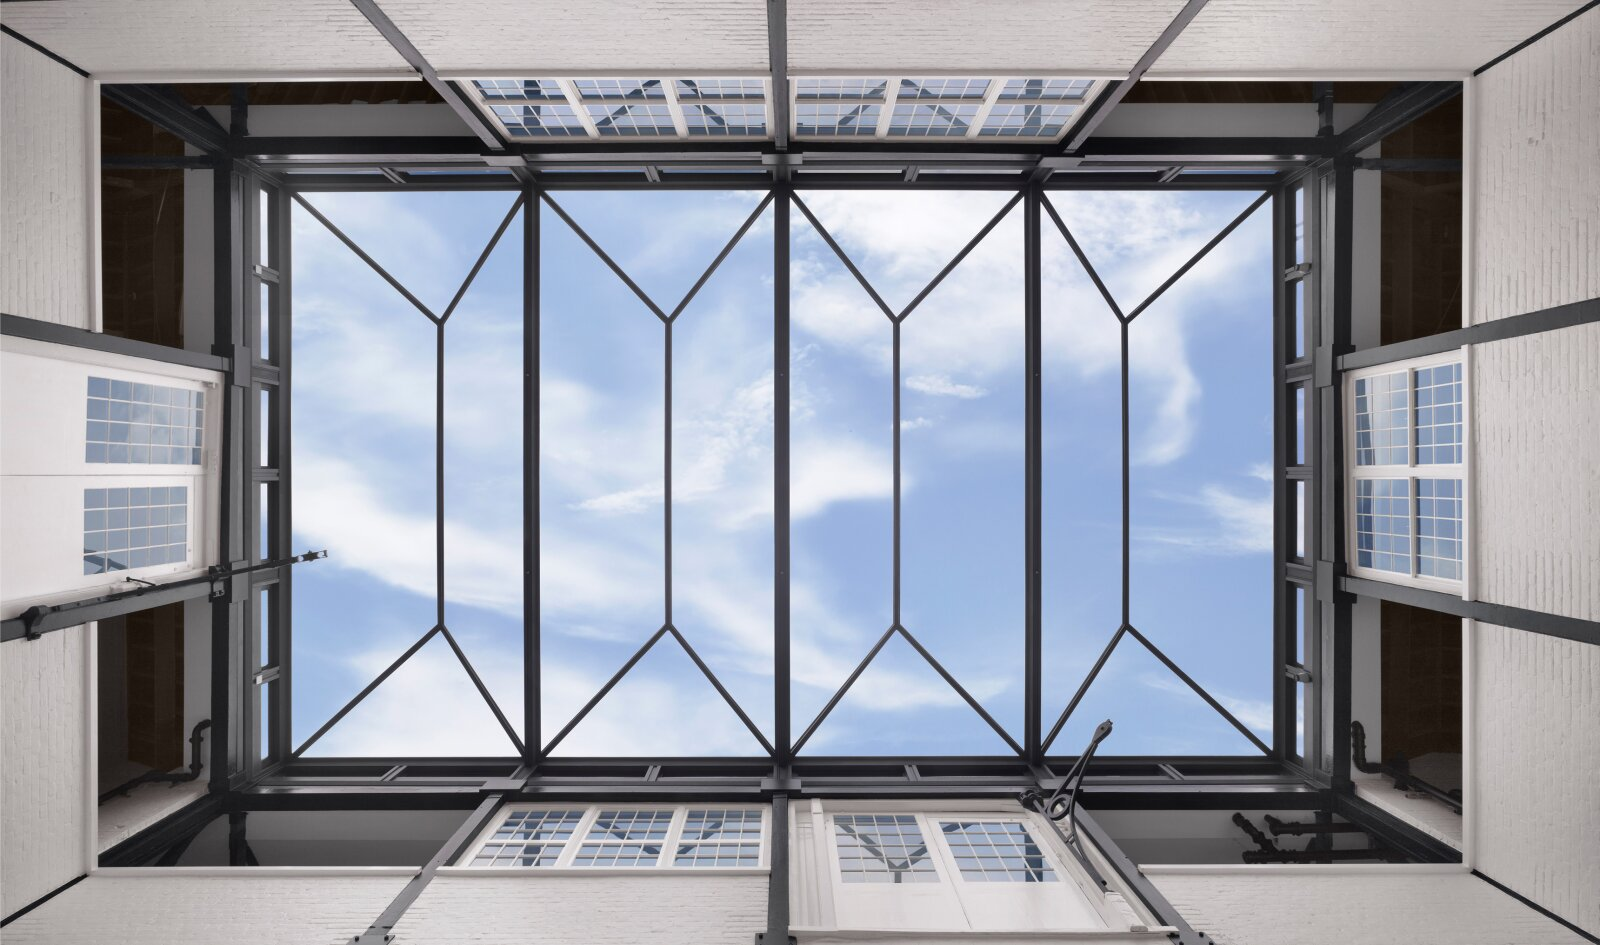 2109 2 Ch Glass Roof Landscape